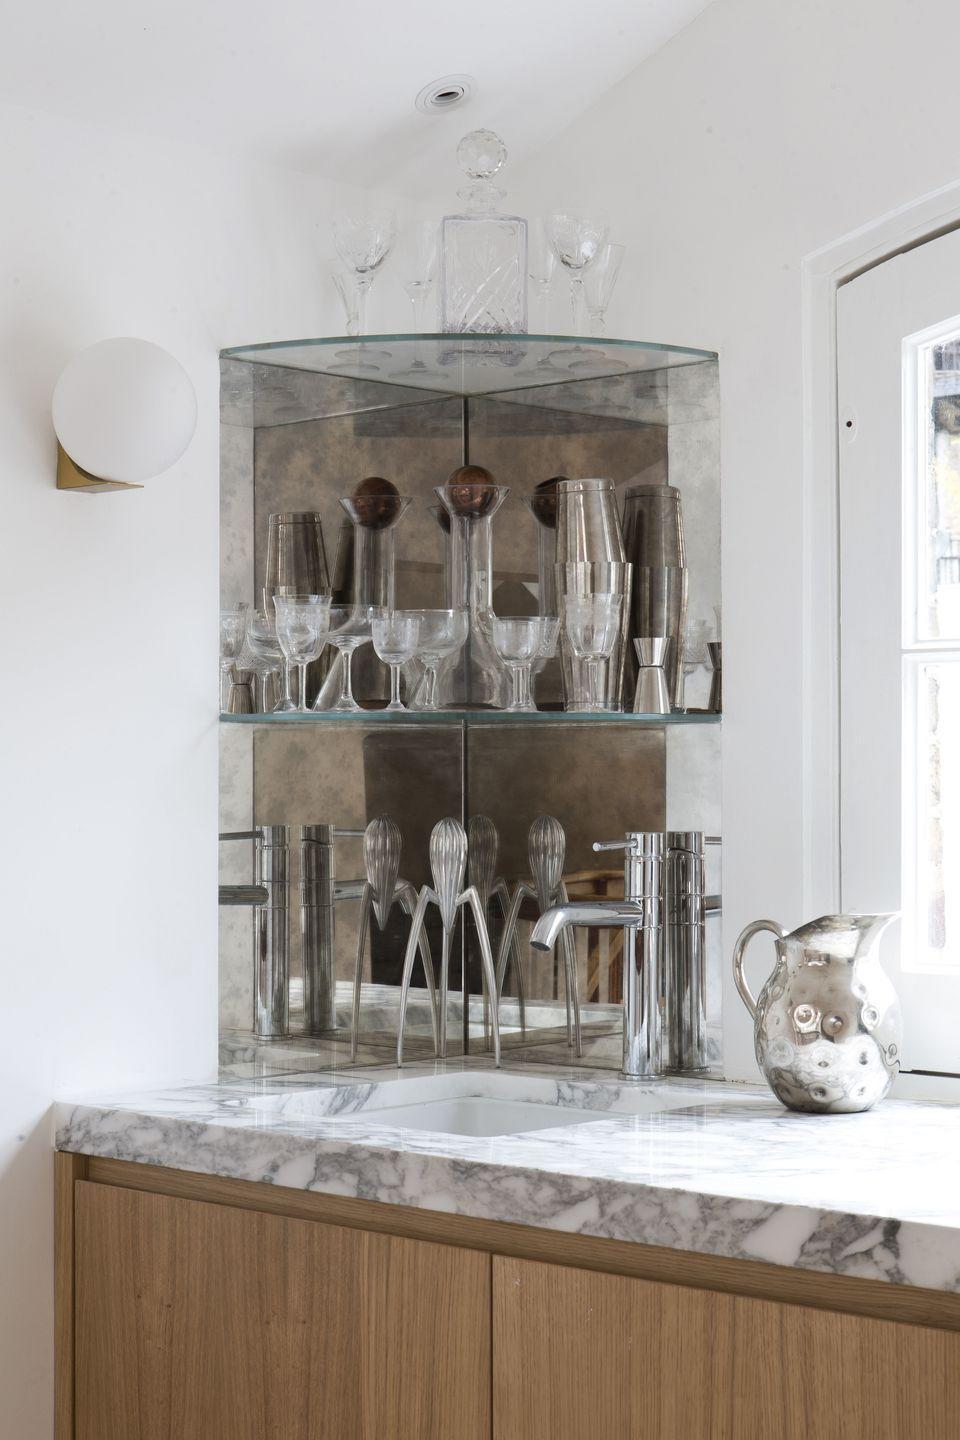 """<p>""""This shows the bar area in a small window space in the top of the house. It's where the hay used to be brought into the loft. We needed to maximise the bar area, so built two corner shelves to house our vintage glasses, cocktail shakers and decanters. The surface is Italian marble to give texture.""""</p>"""